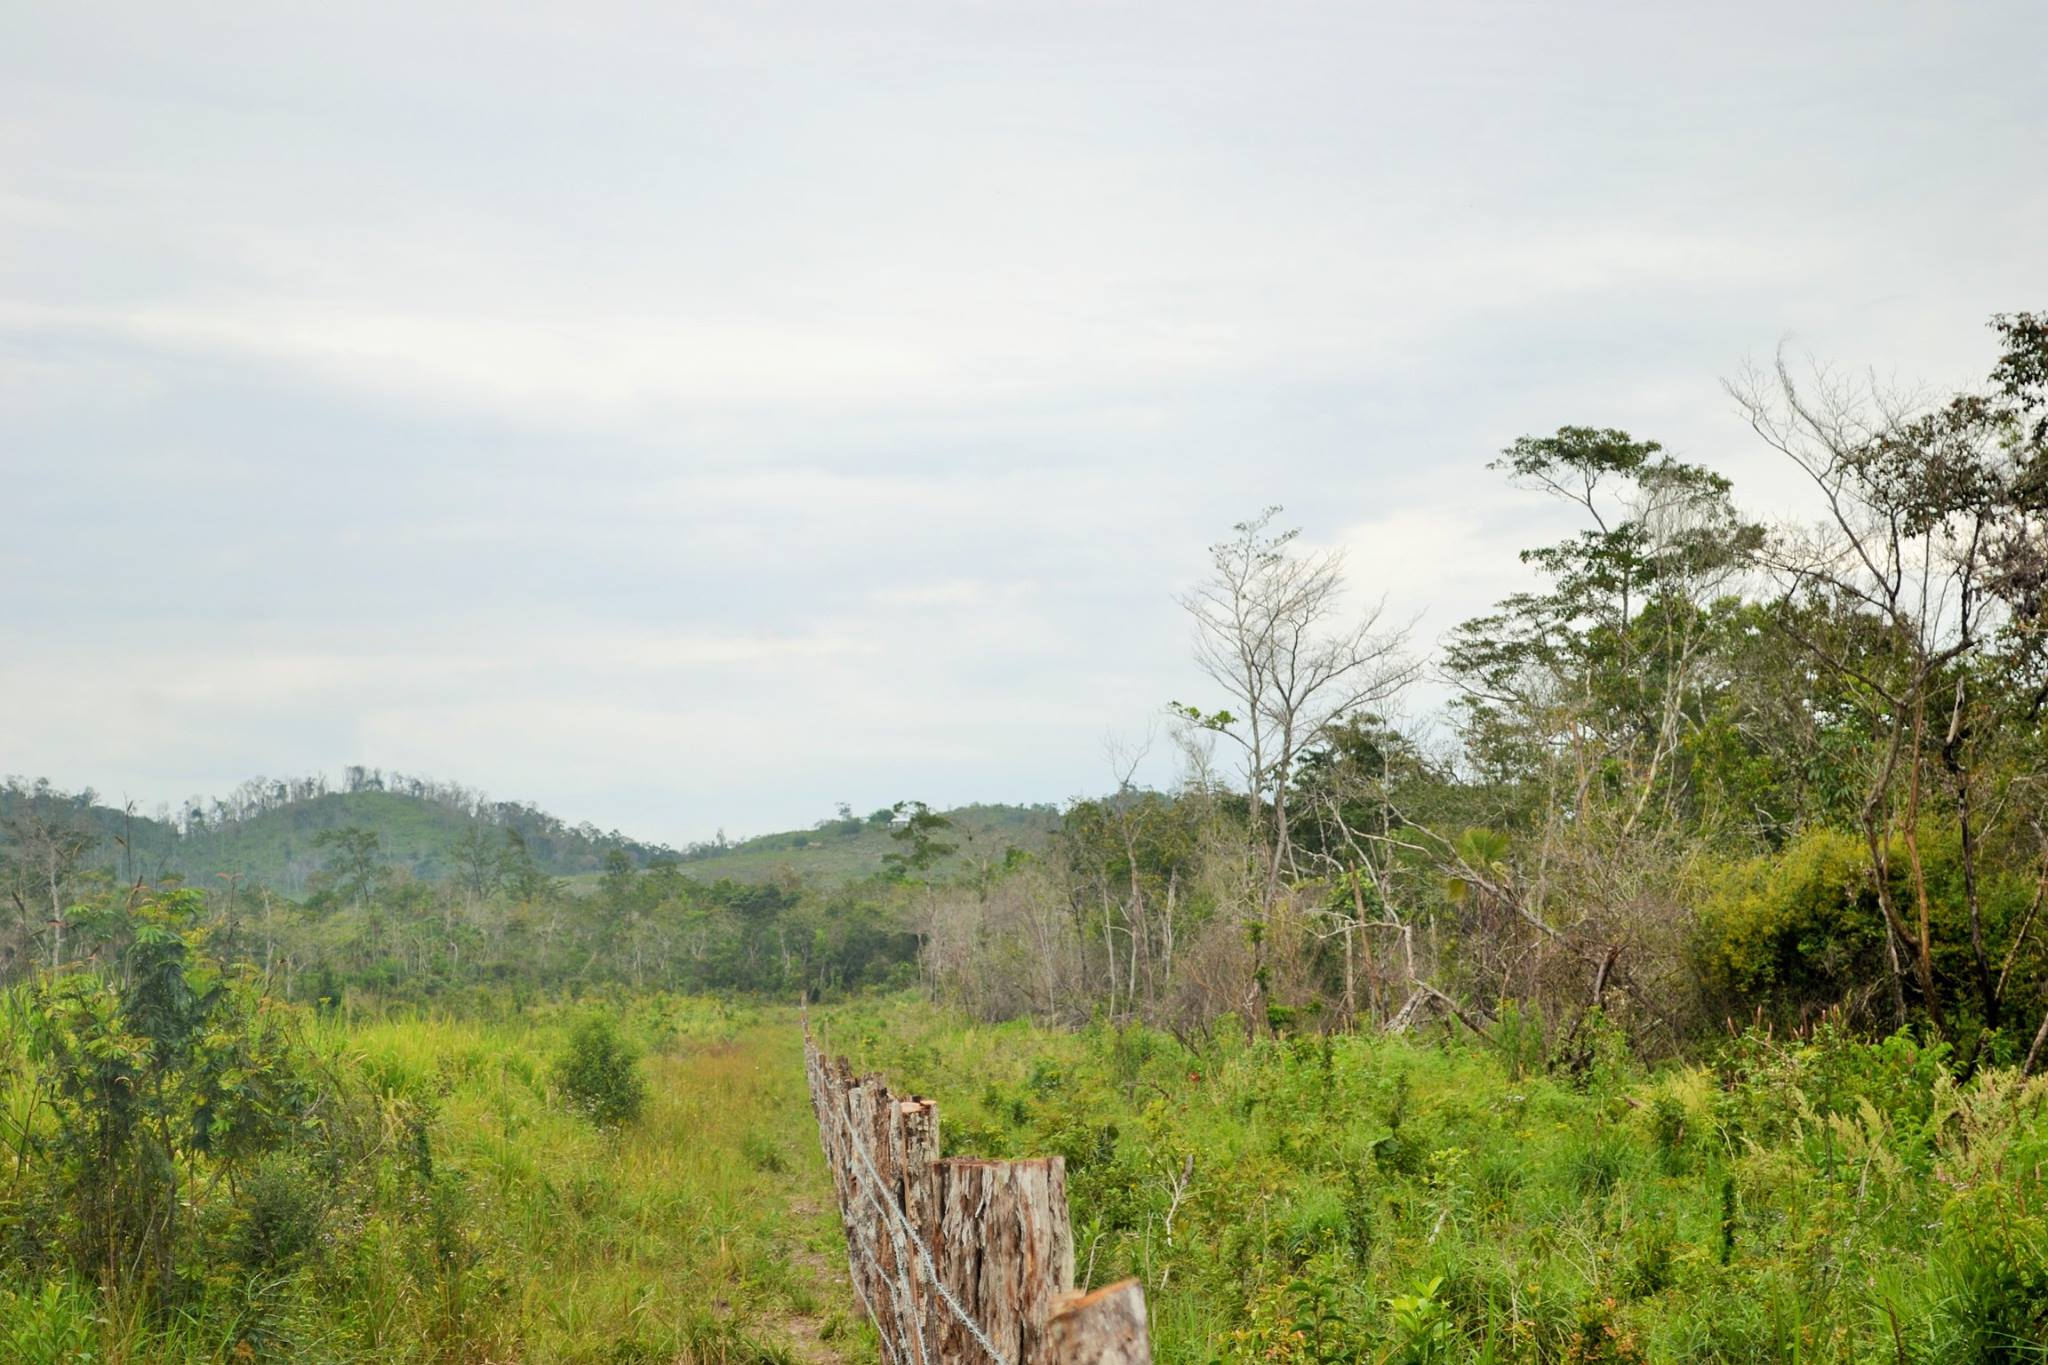 100 ACRES in the Spanish Lookout